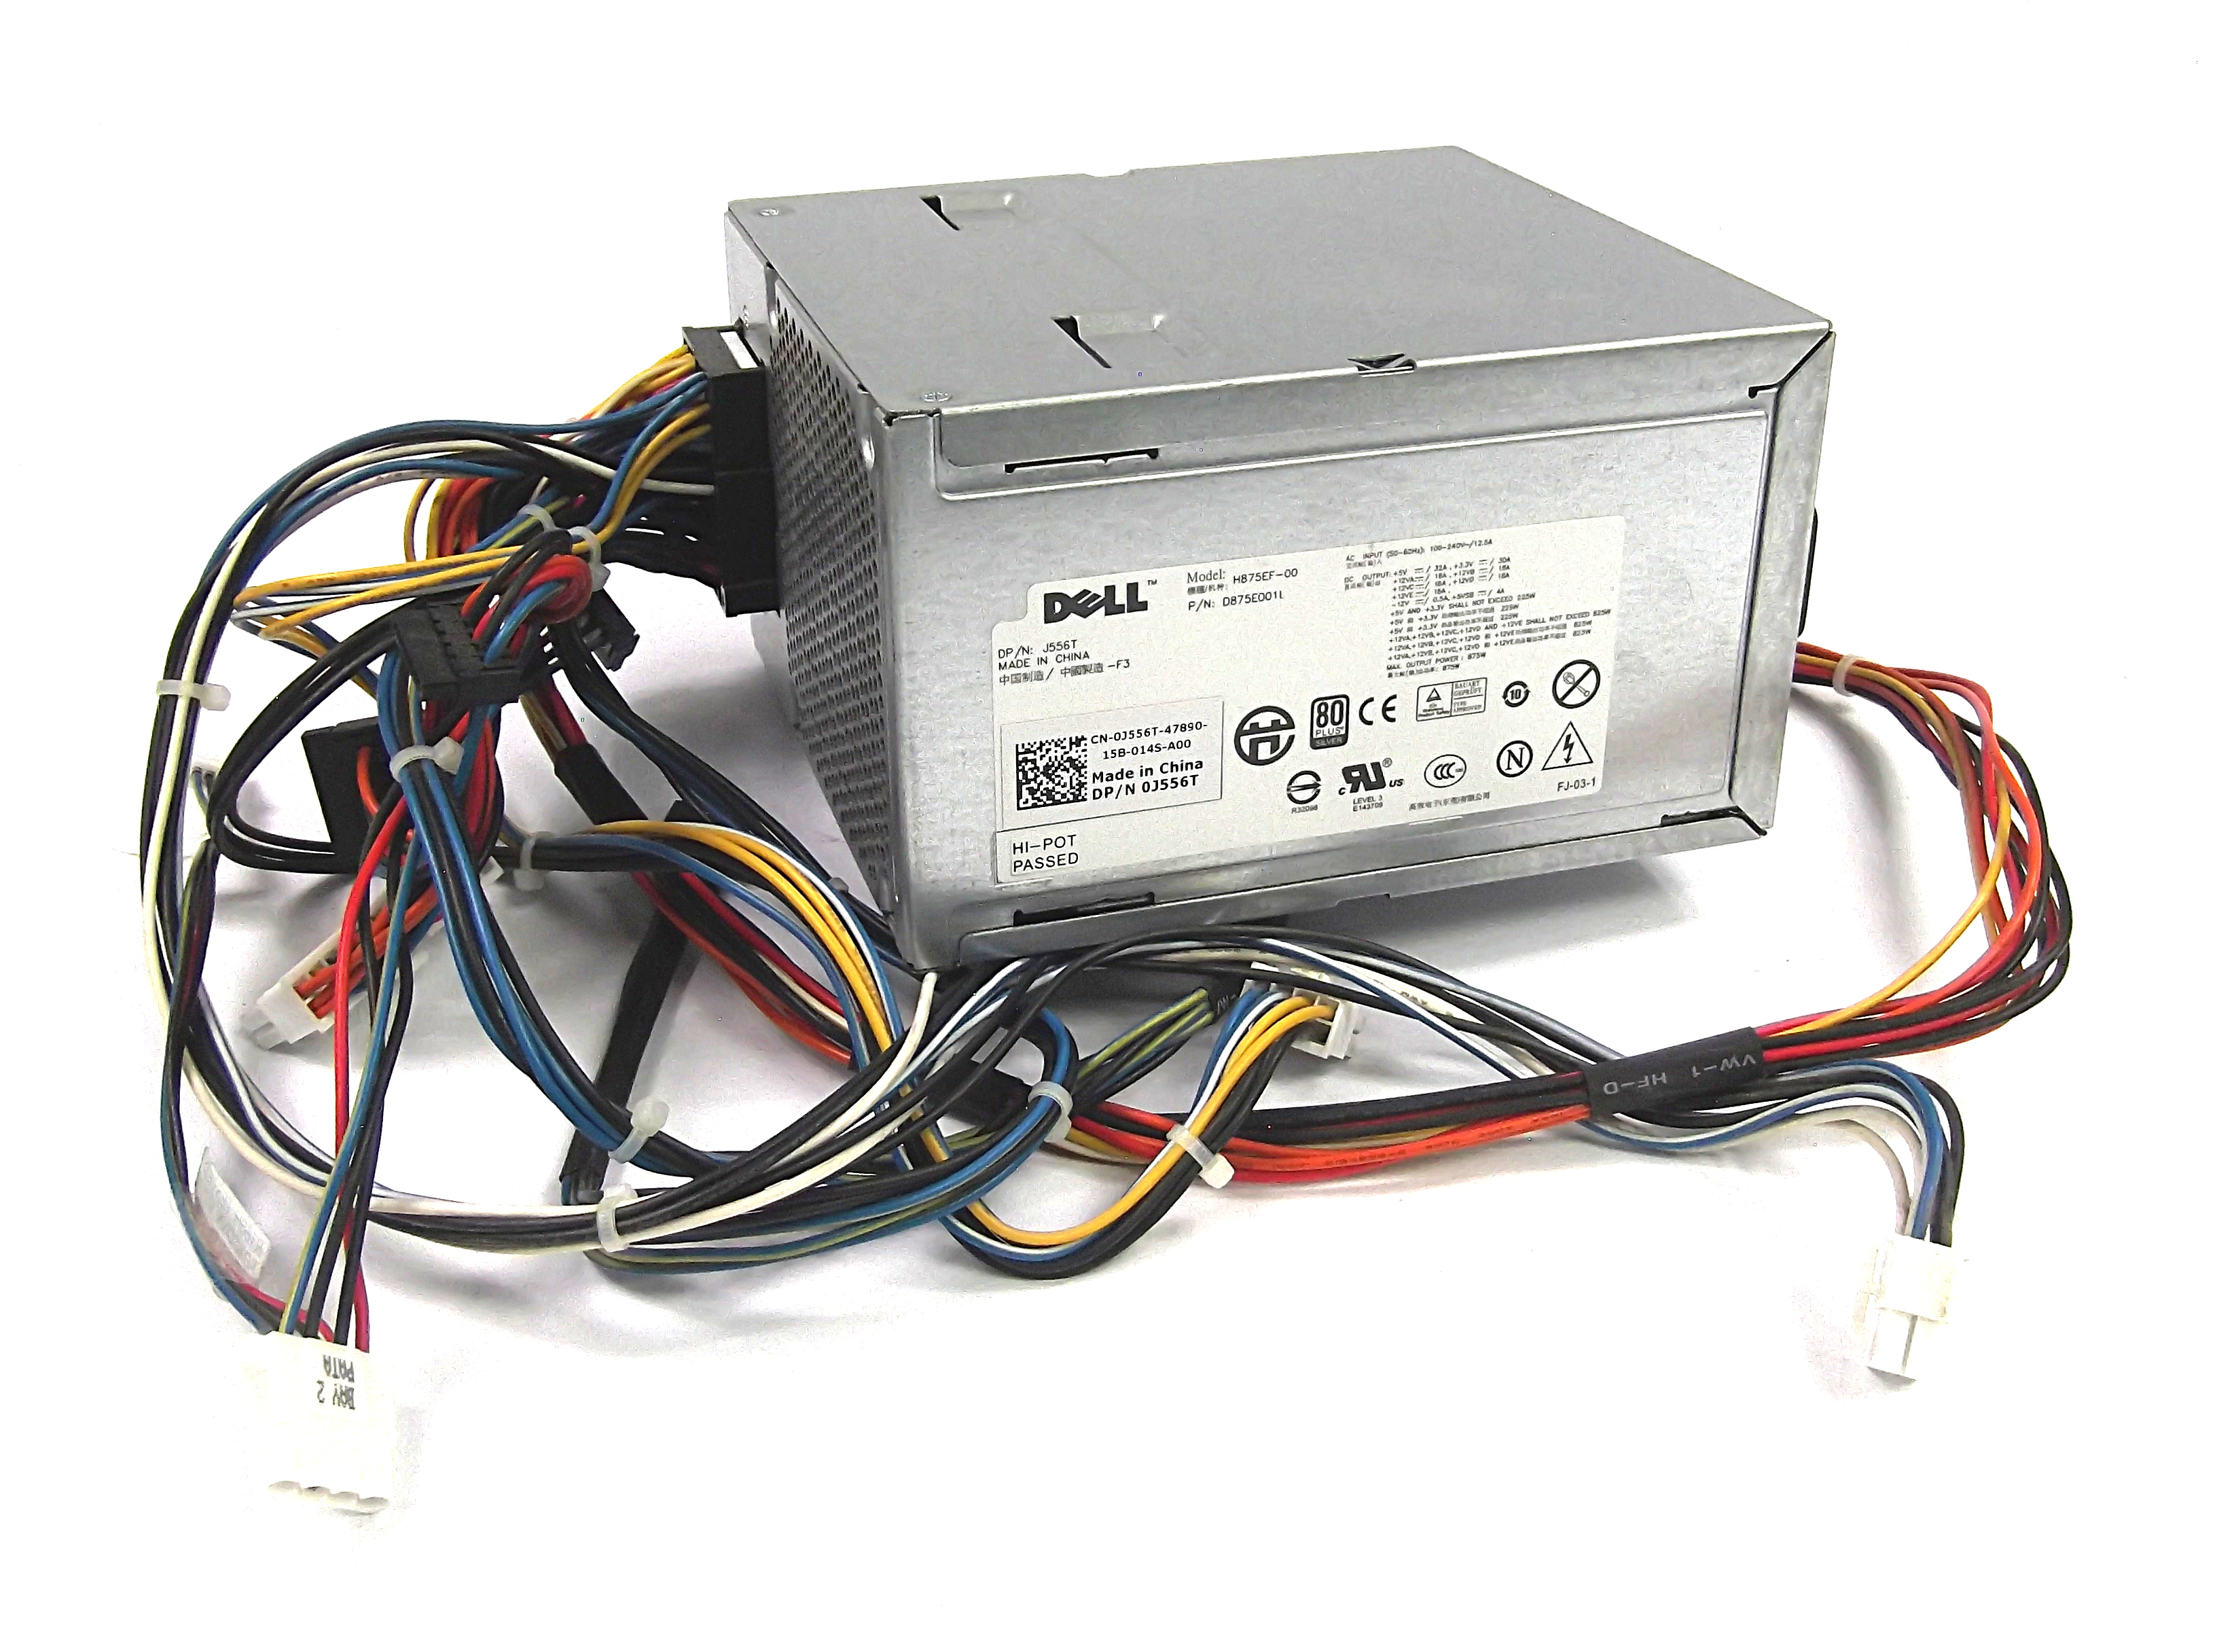 Dell J556t Precision T5500 875w Power Supply And Wire Harness R166h Wiring